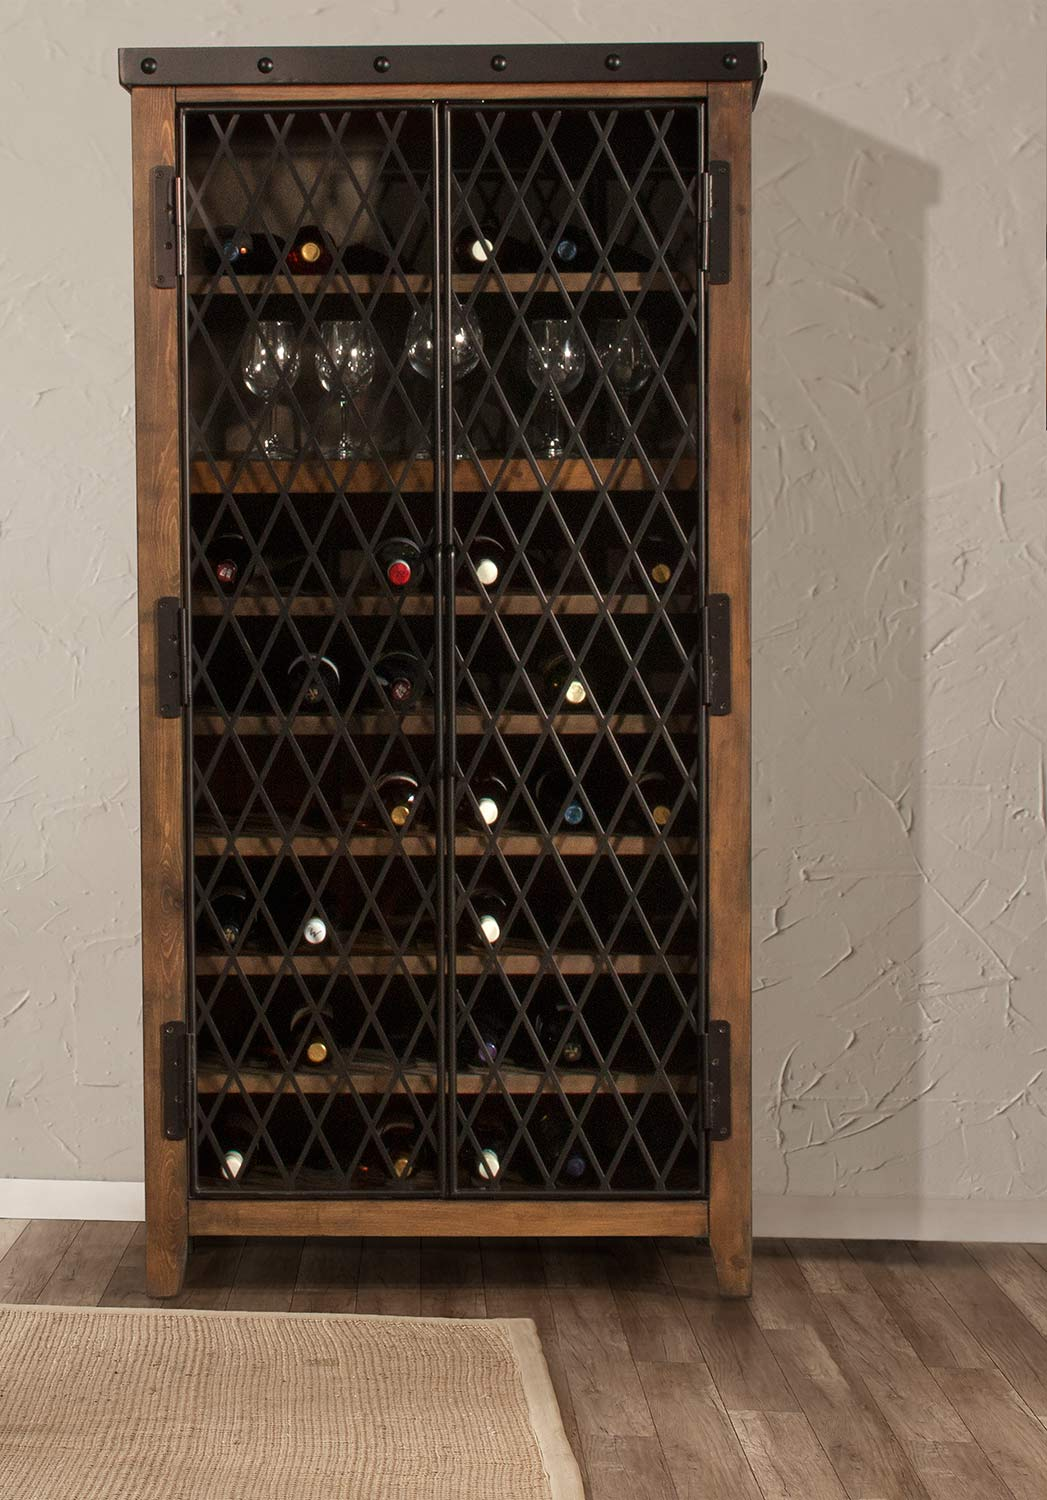 Hillsdale Jennings Tall Wine Cabinet - Walnut Wood/Brown Metal